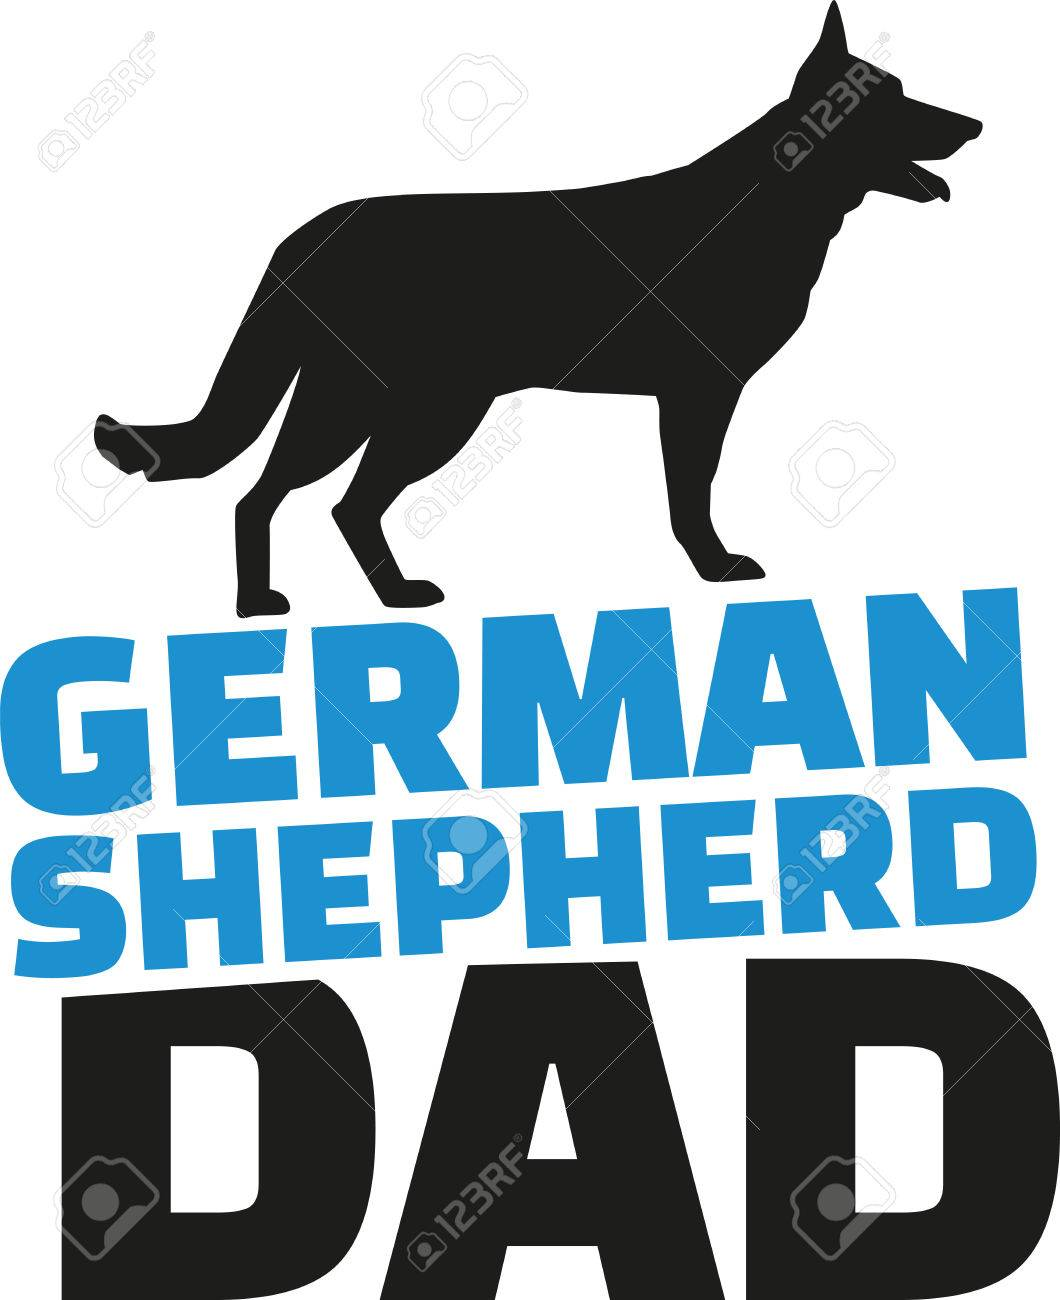 german shepherd dad with dog silhouette royalty free cliparts